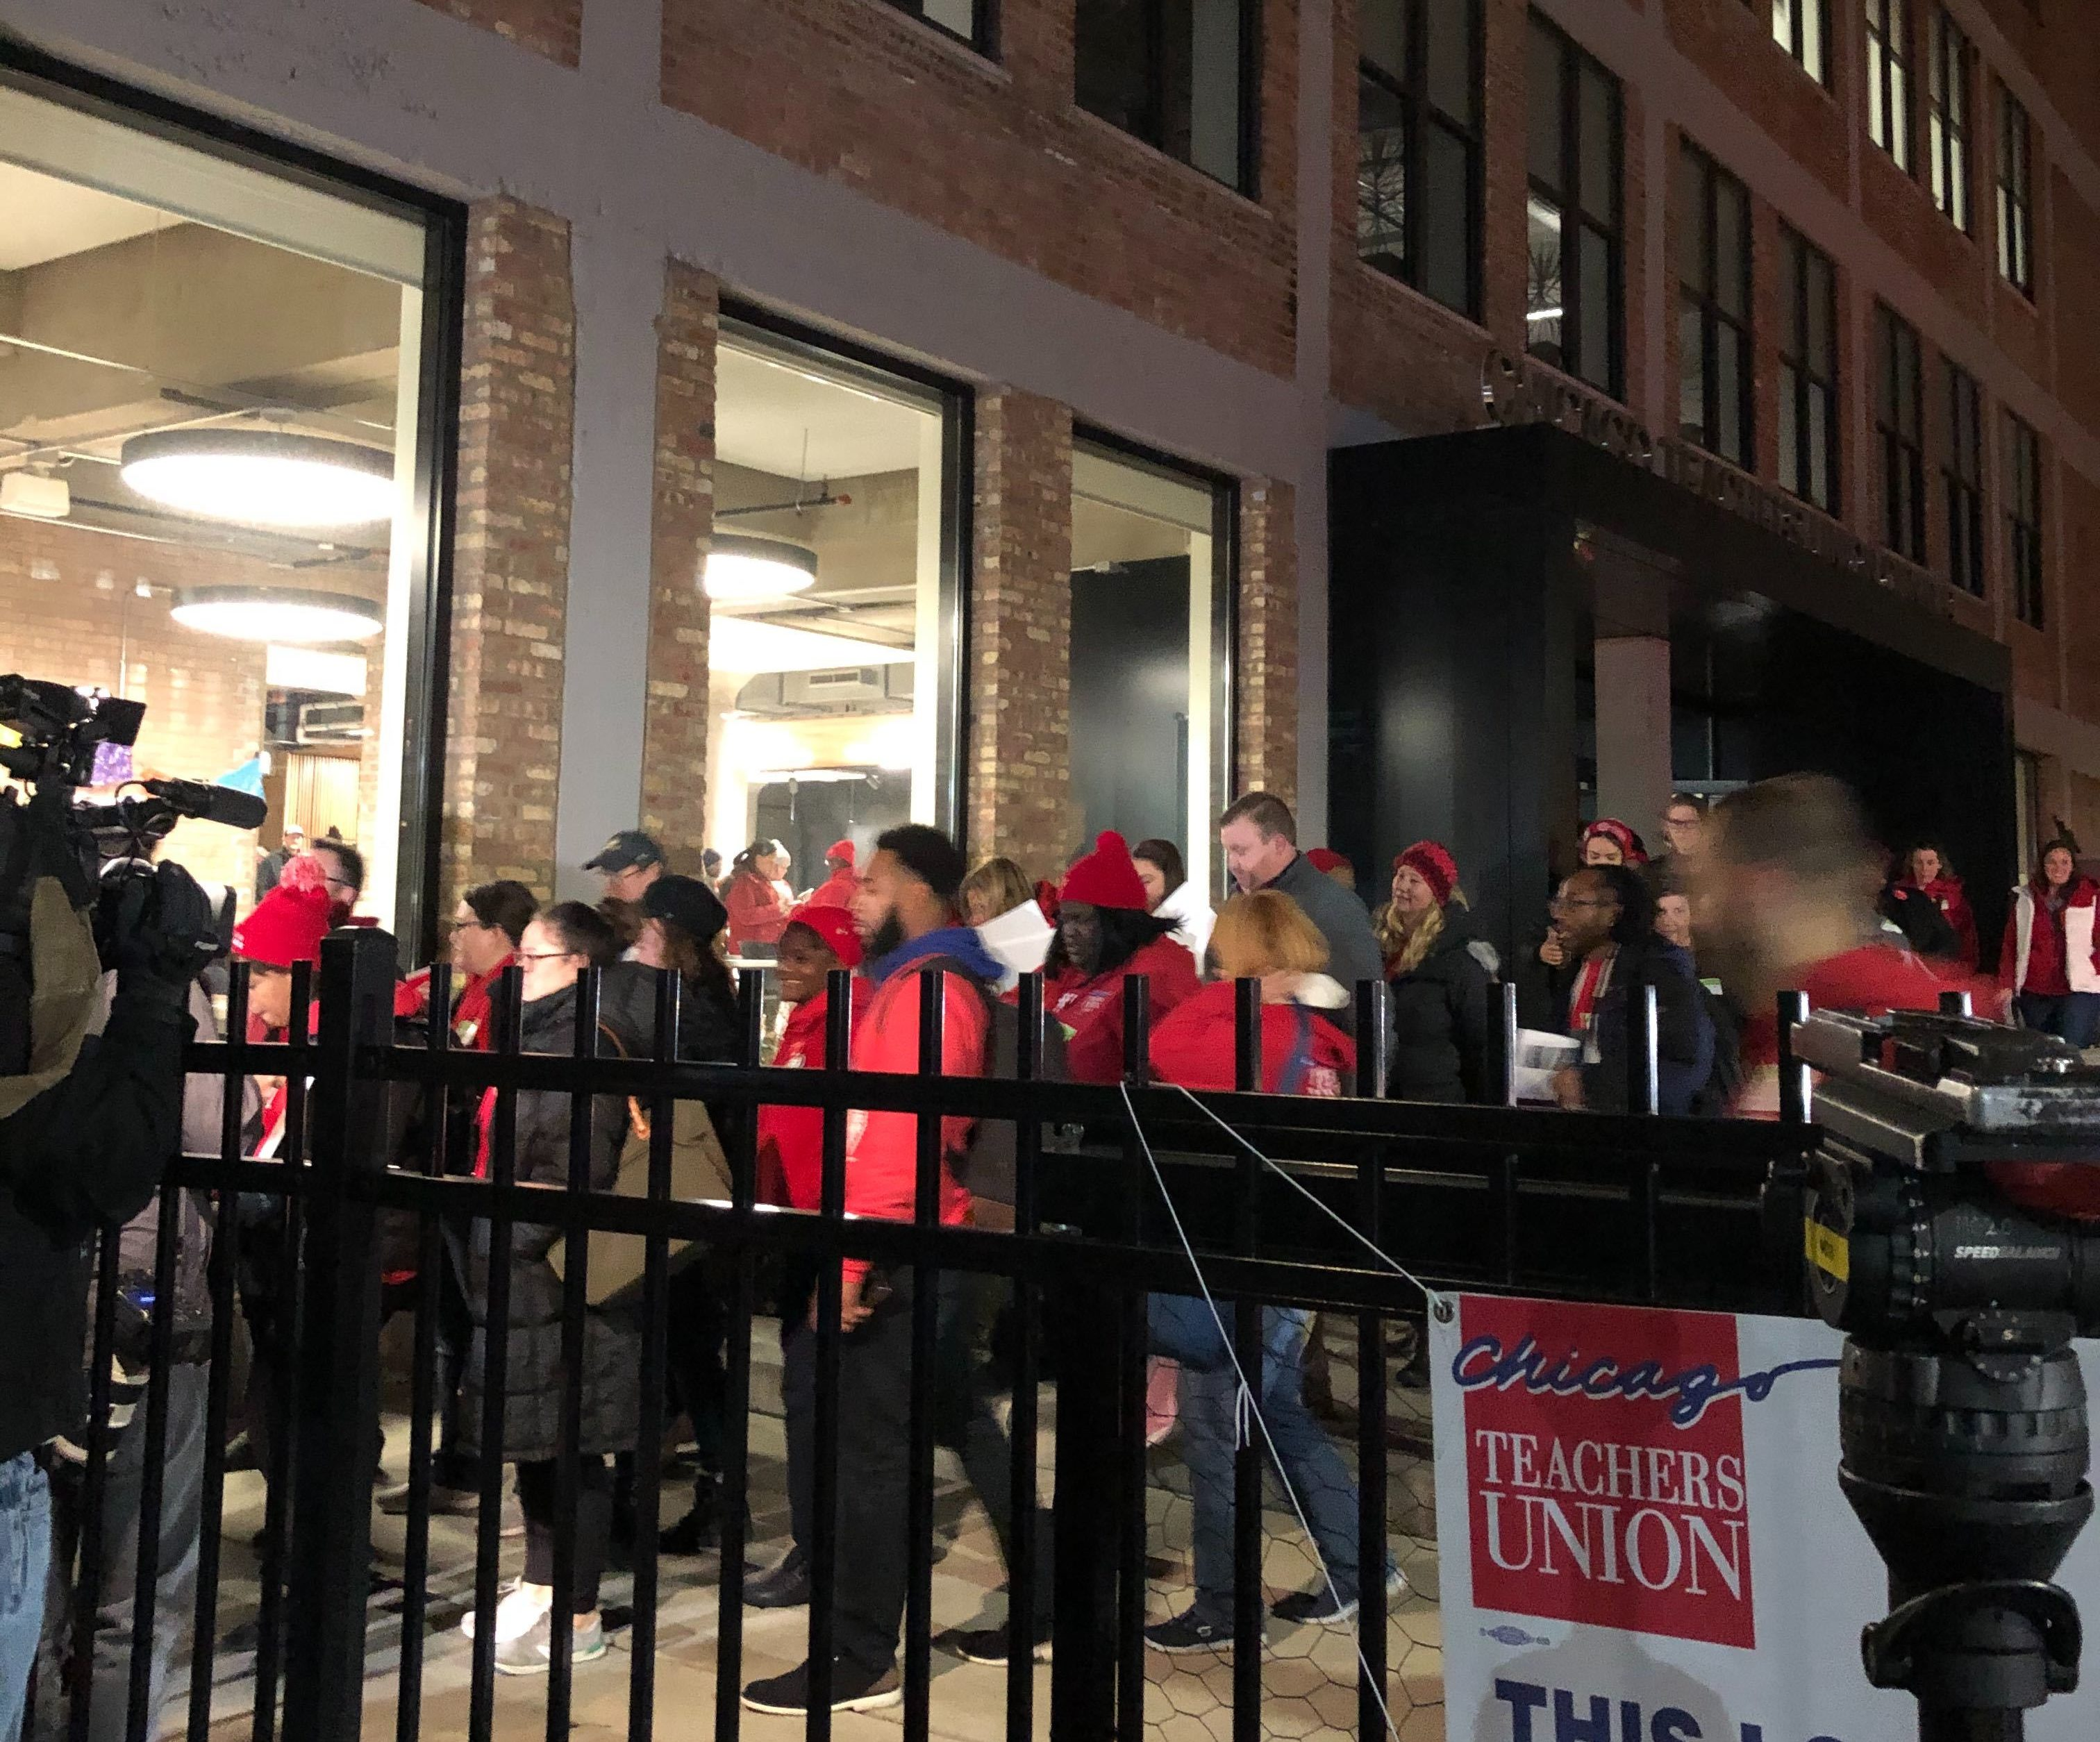 Chicago Teachers Union delegates leave a House of Delegates meeting on Oct. 29, 2019, the ninth day of the Chicago teachers strike.